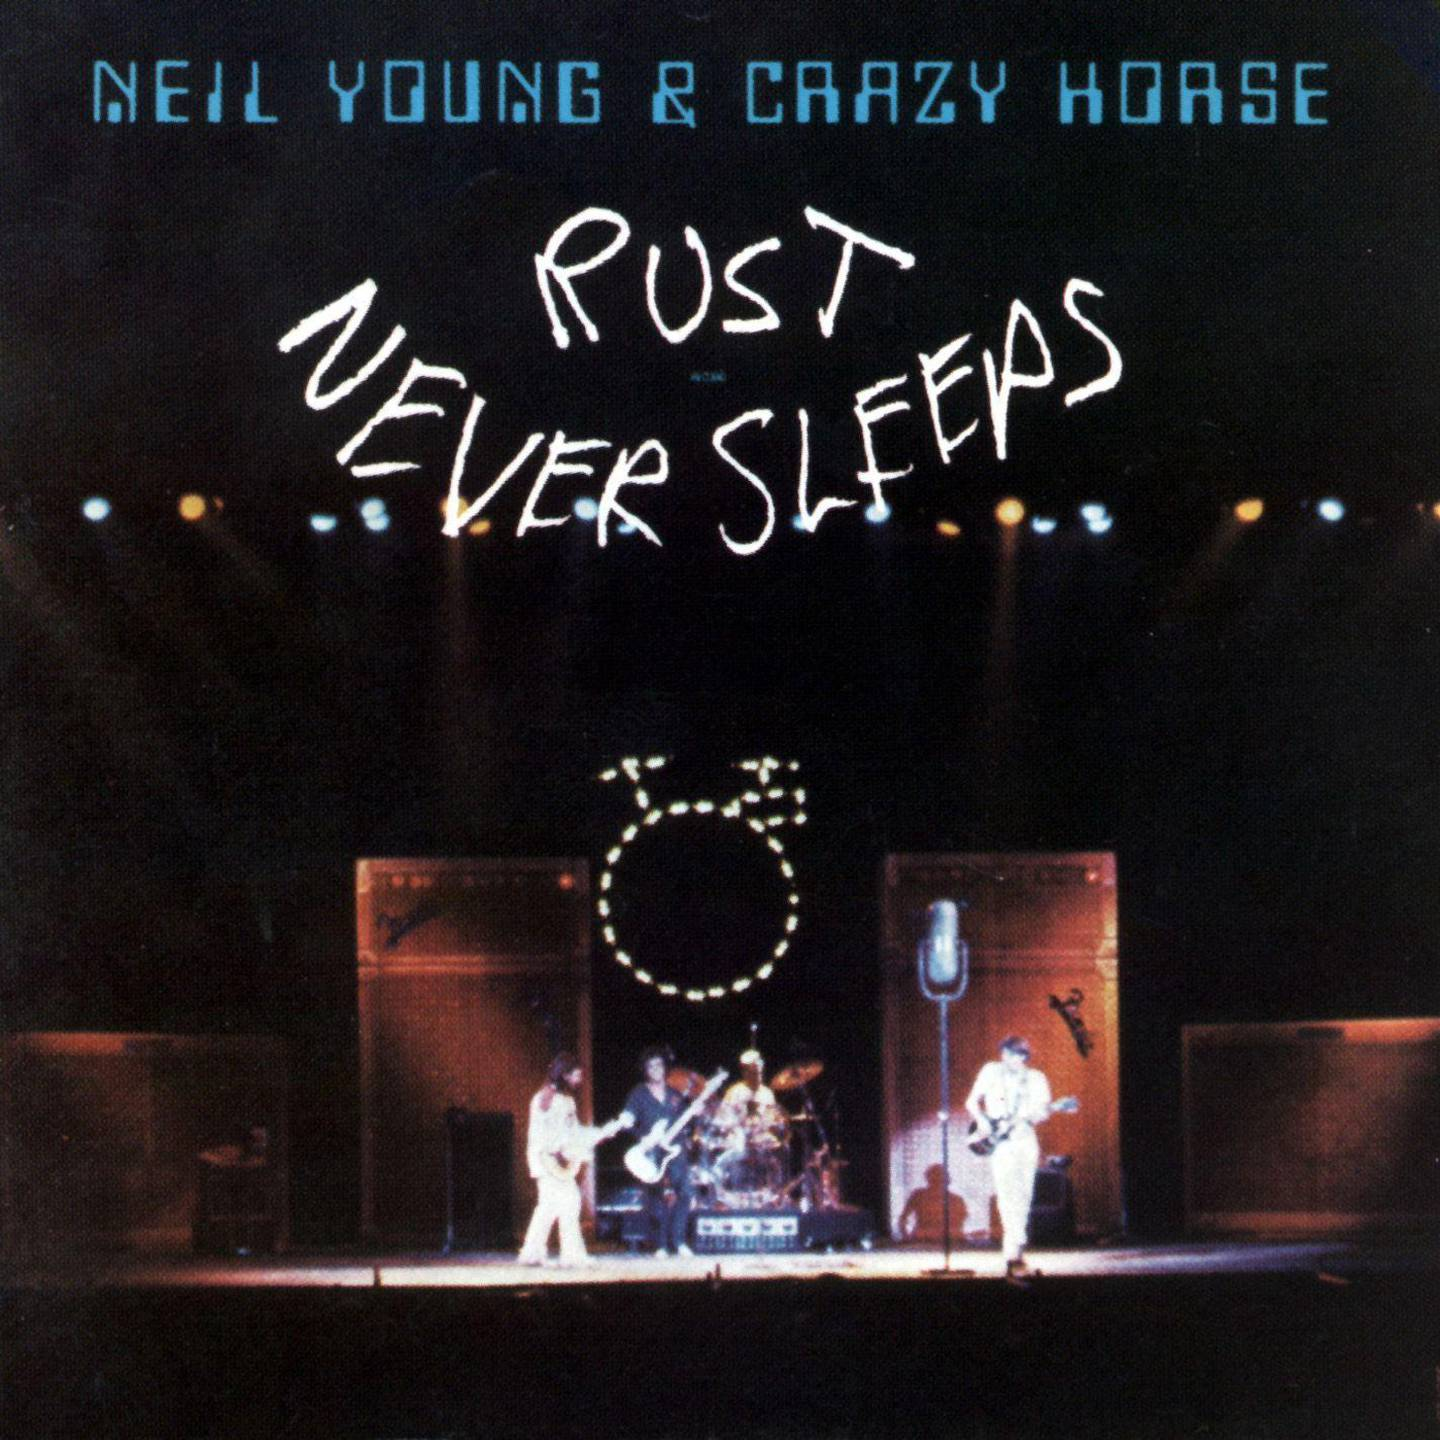 Rust Never Sleeps by Neil Young & Crazy Horse. Courtesy Reprise Records